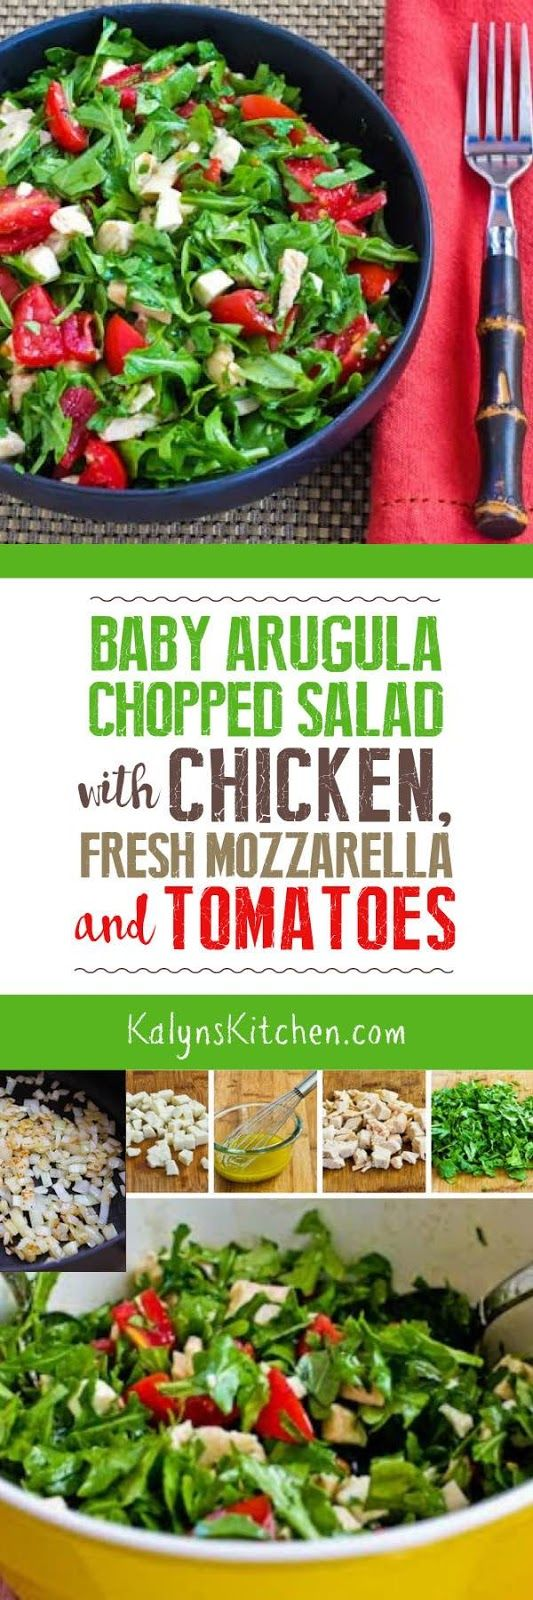 This low-carb and gluten-free Baby Arugula Chopped Salad with Chicken, Fresh Mozzarella, and Tomatoes is also South Beach Diet Phase One approved, and this is a delicious way to use leftover rotisserie chicken. [from KalynsKitchen.com]